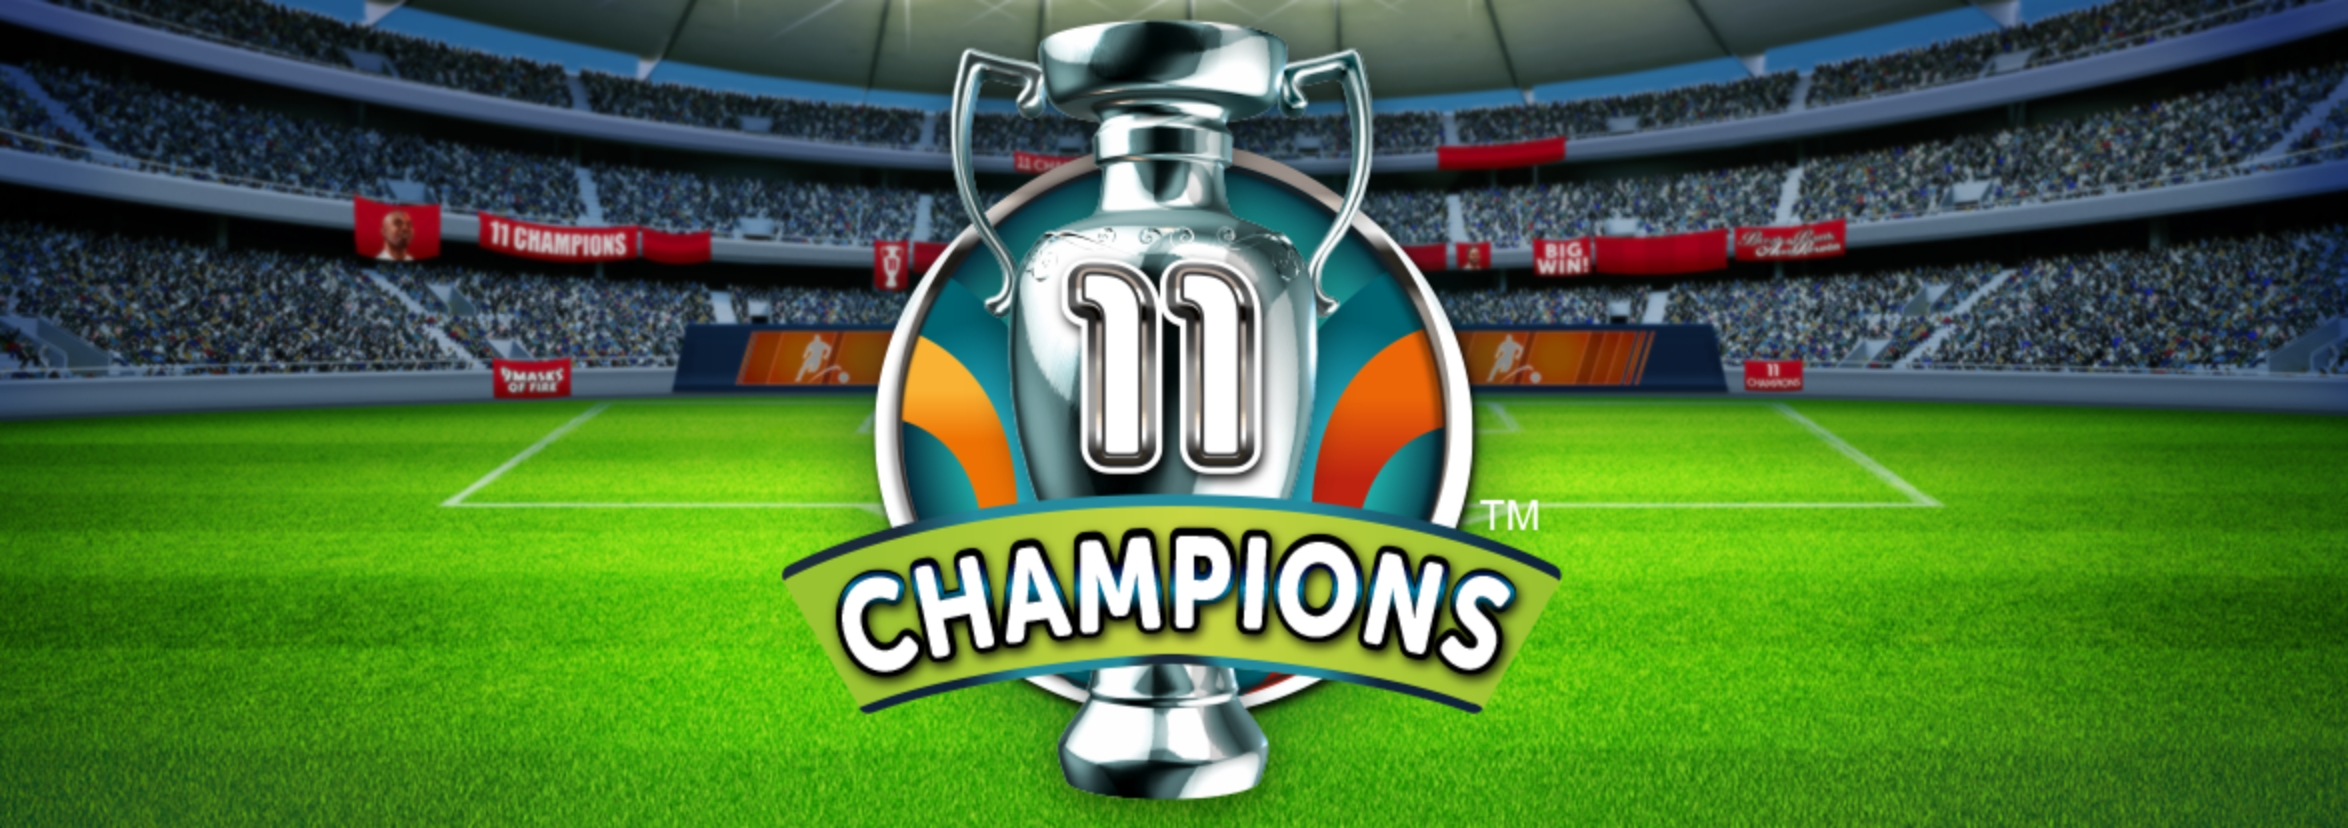 Se 11 Champions Online Slot Demo Game, Gameburger Studios